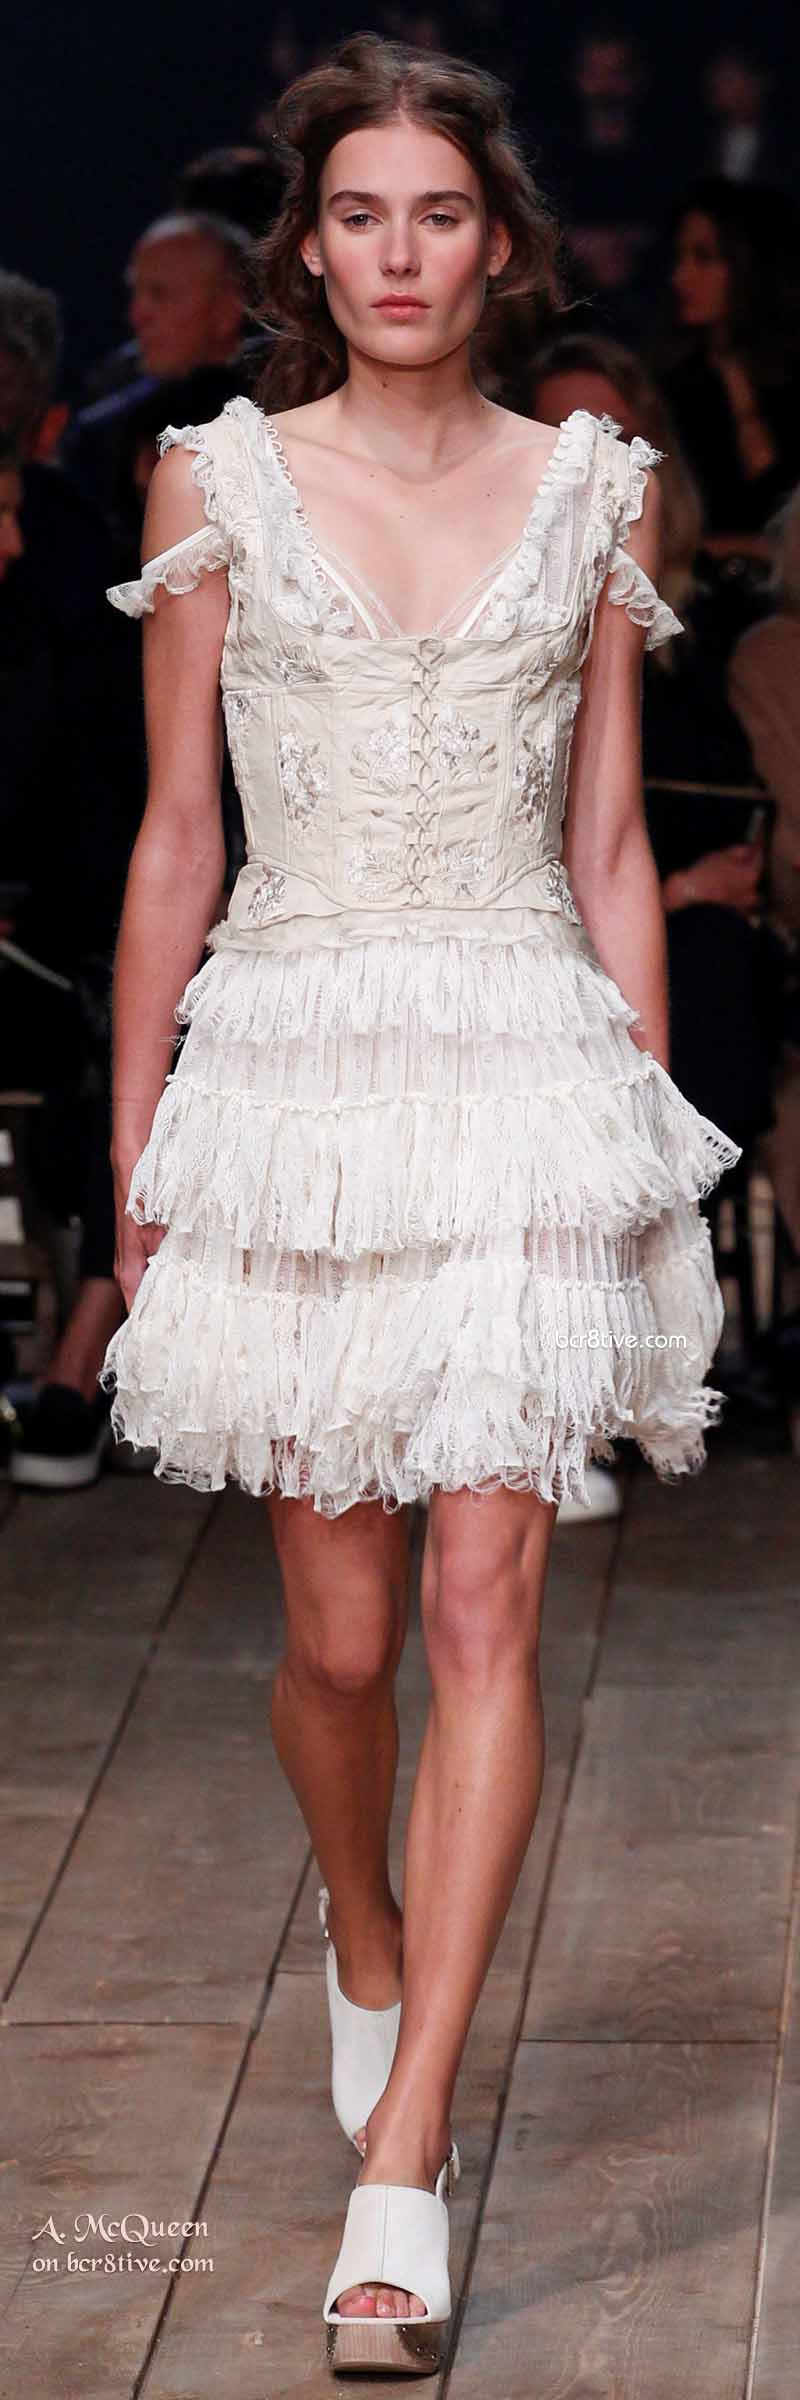 Hoboish Knit Ruffled Skirt - The Best of Alexander McQueen 2016